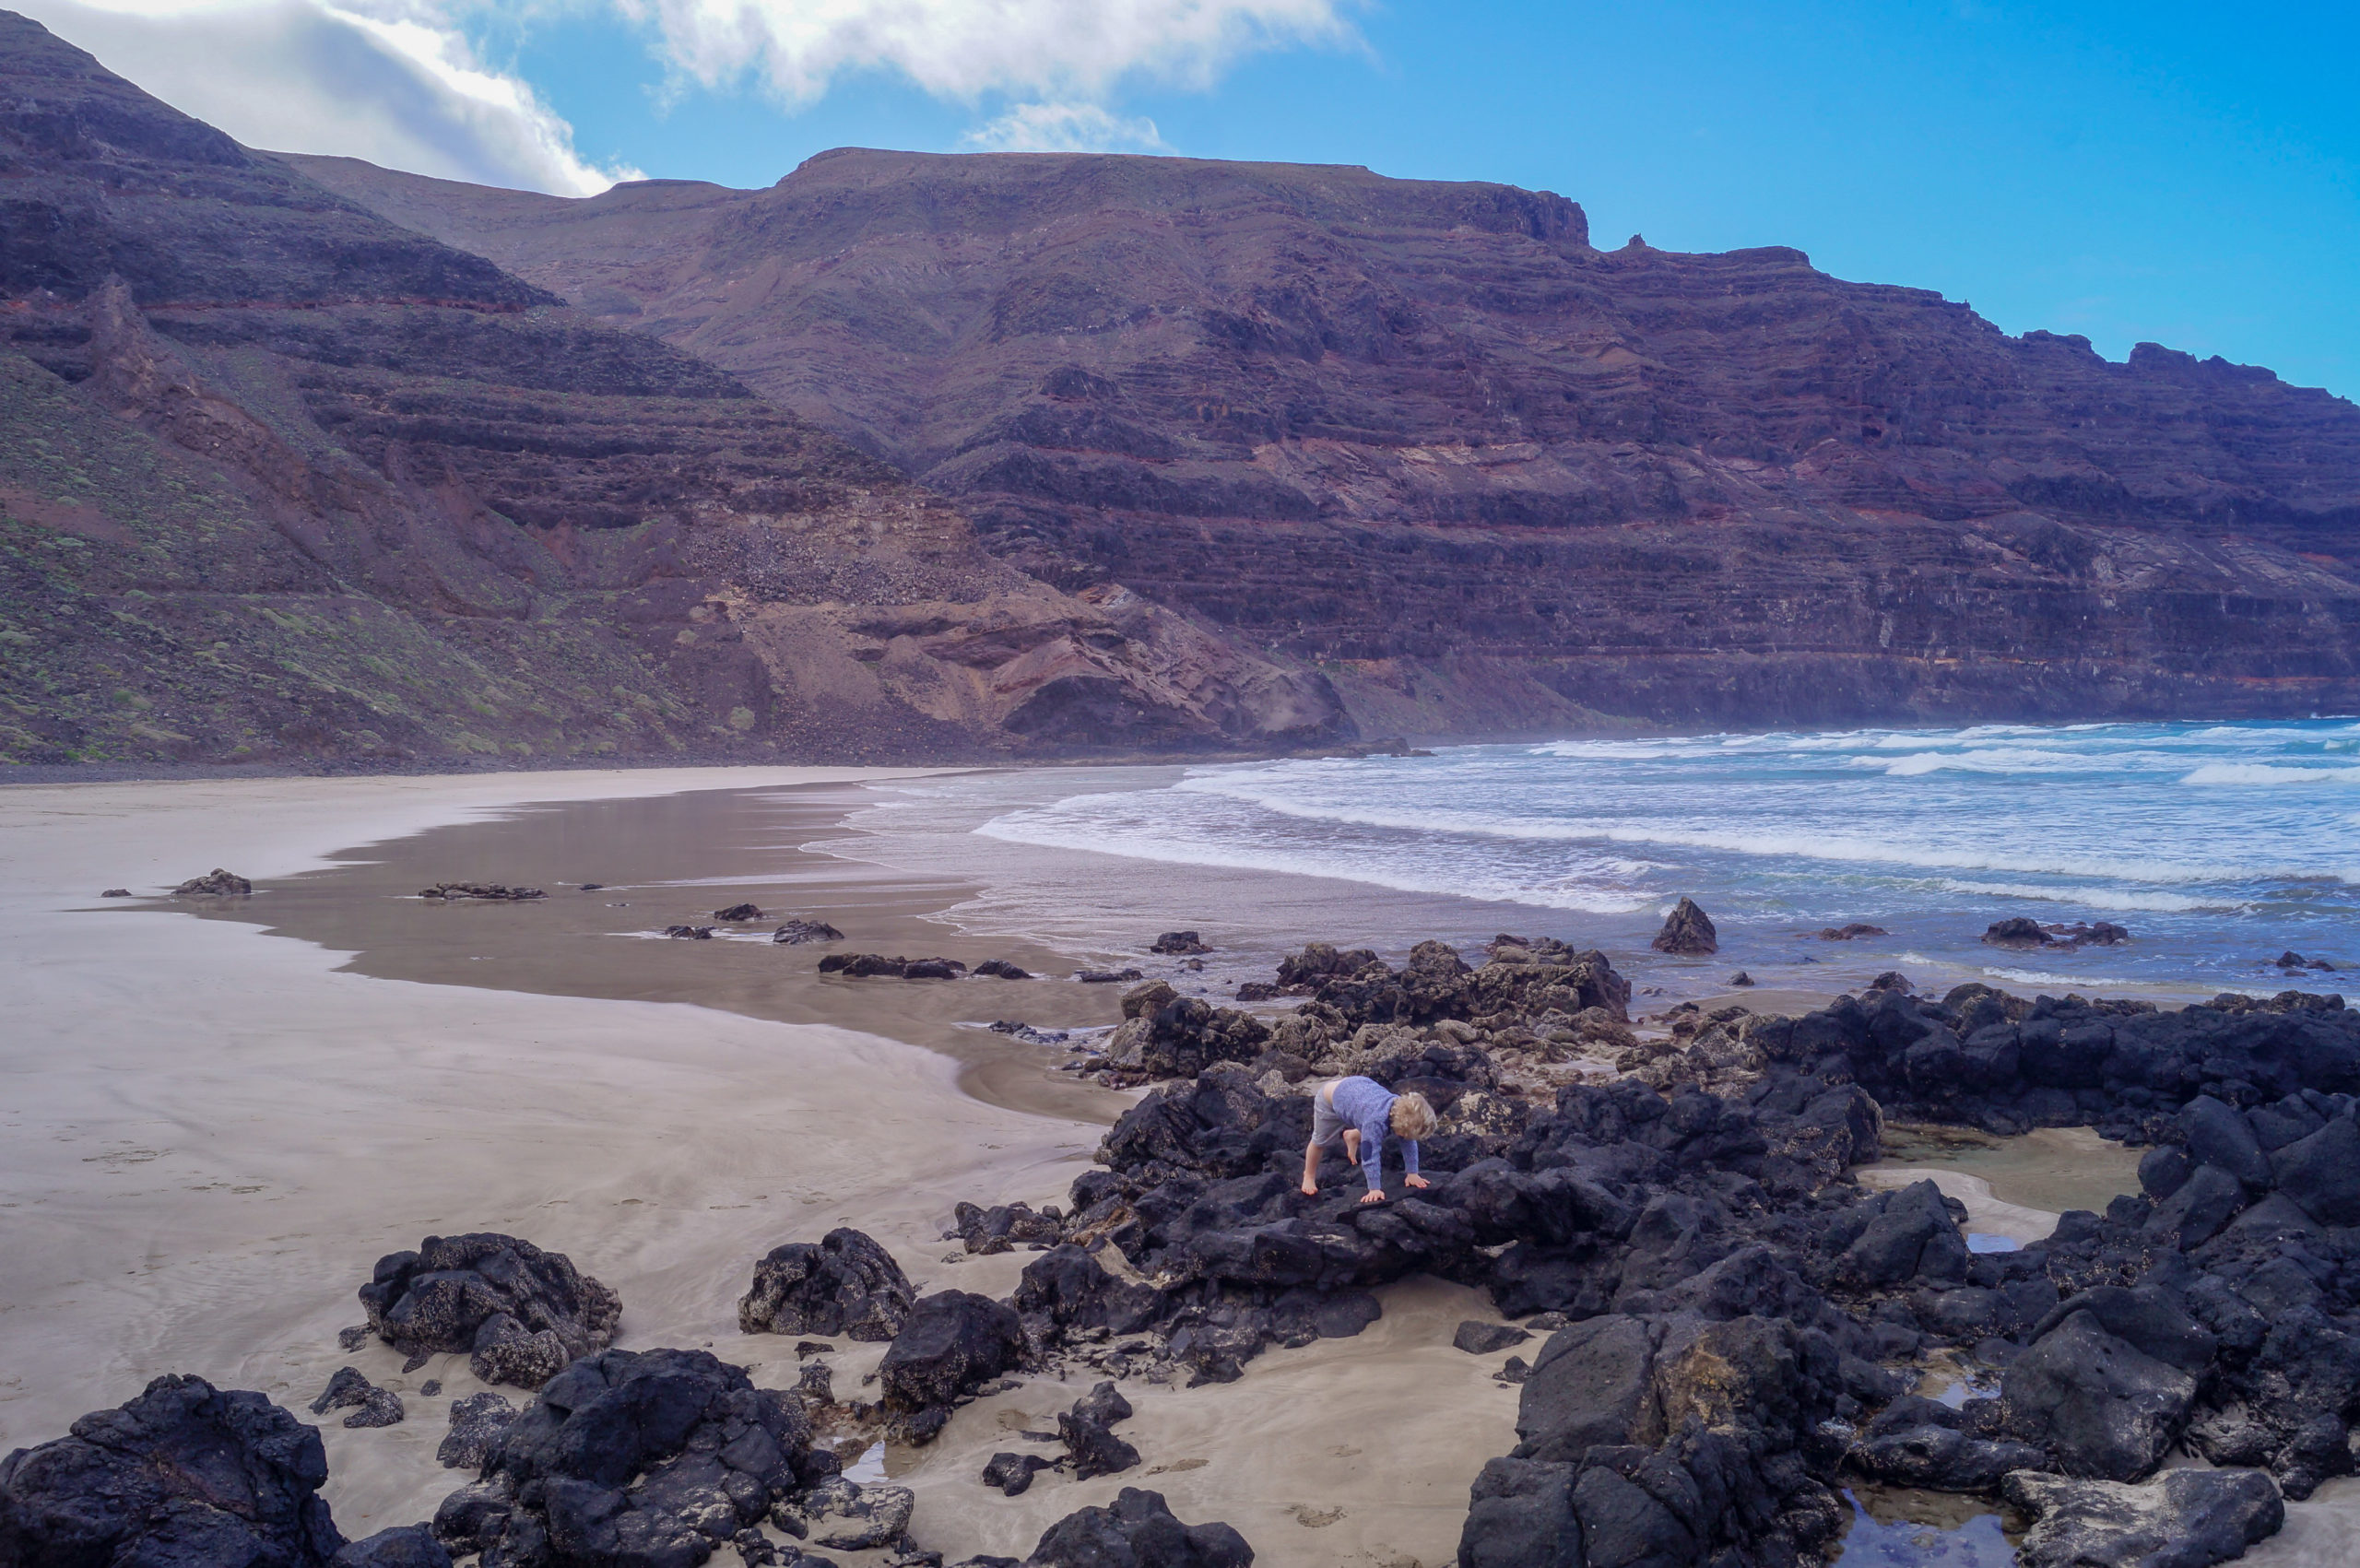 Orzola Beach, Lanzarote, The Canary Islands